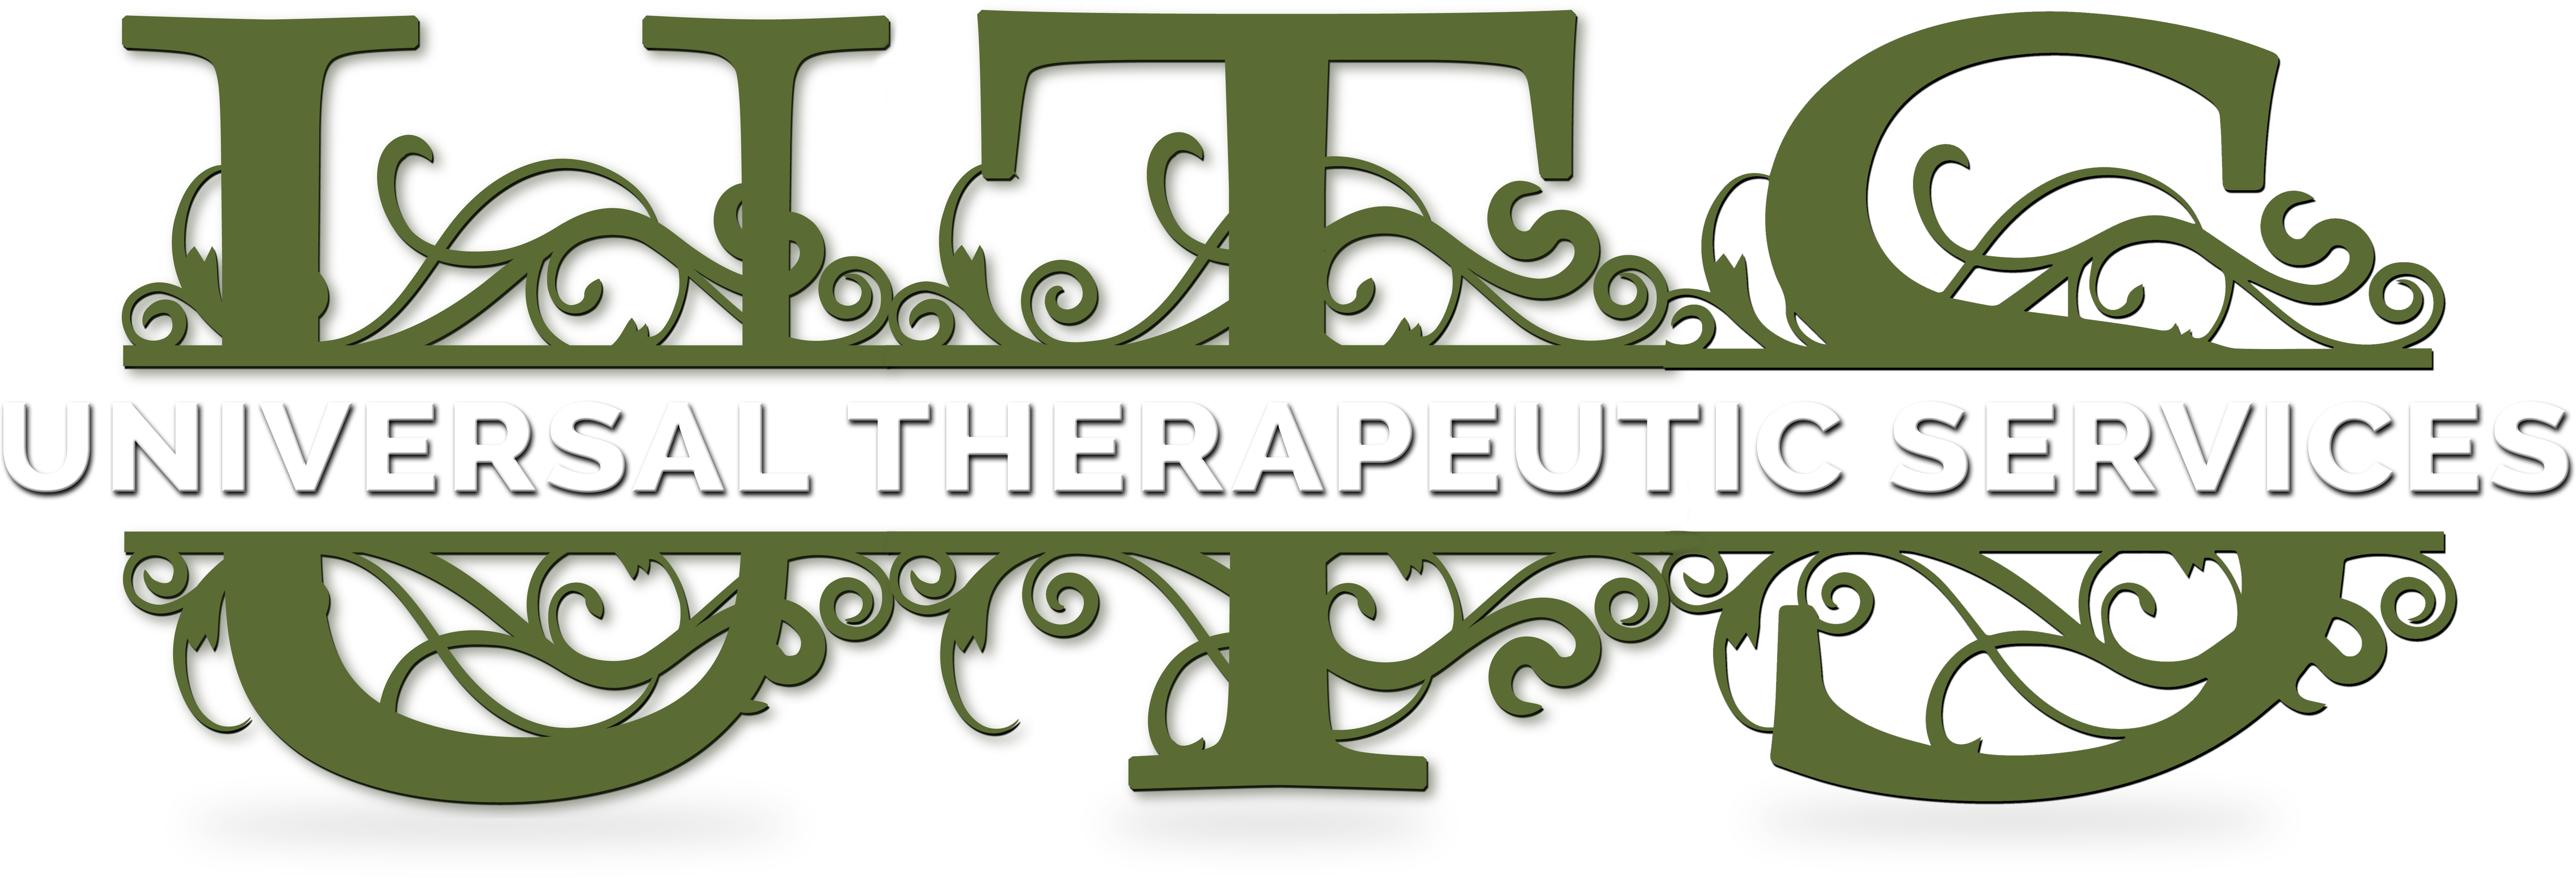 Universal Therapeutic Serivces, LLC